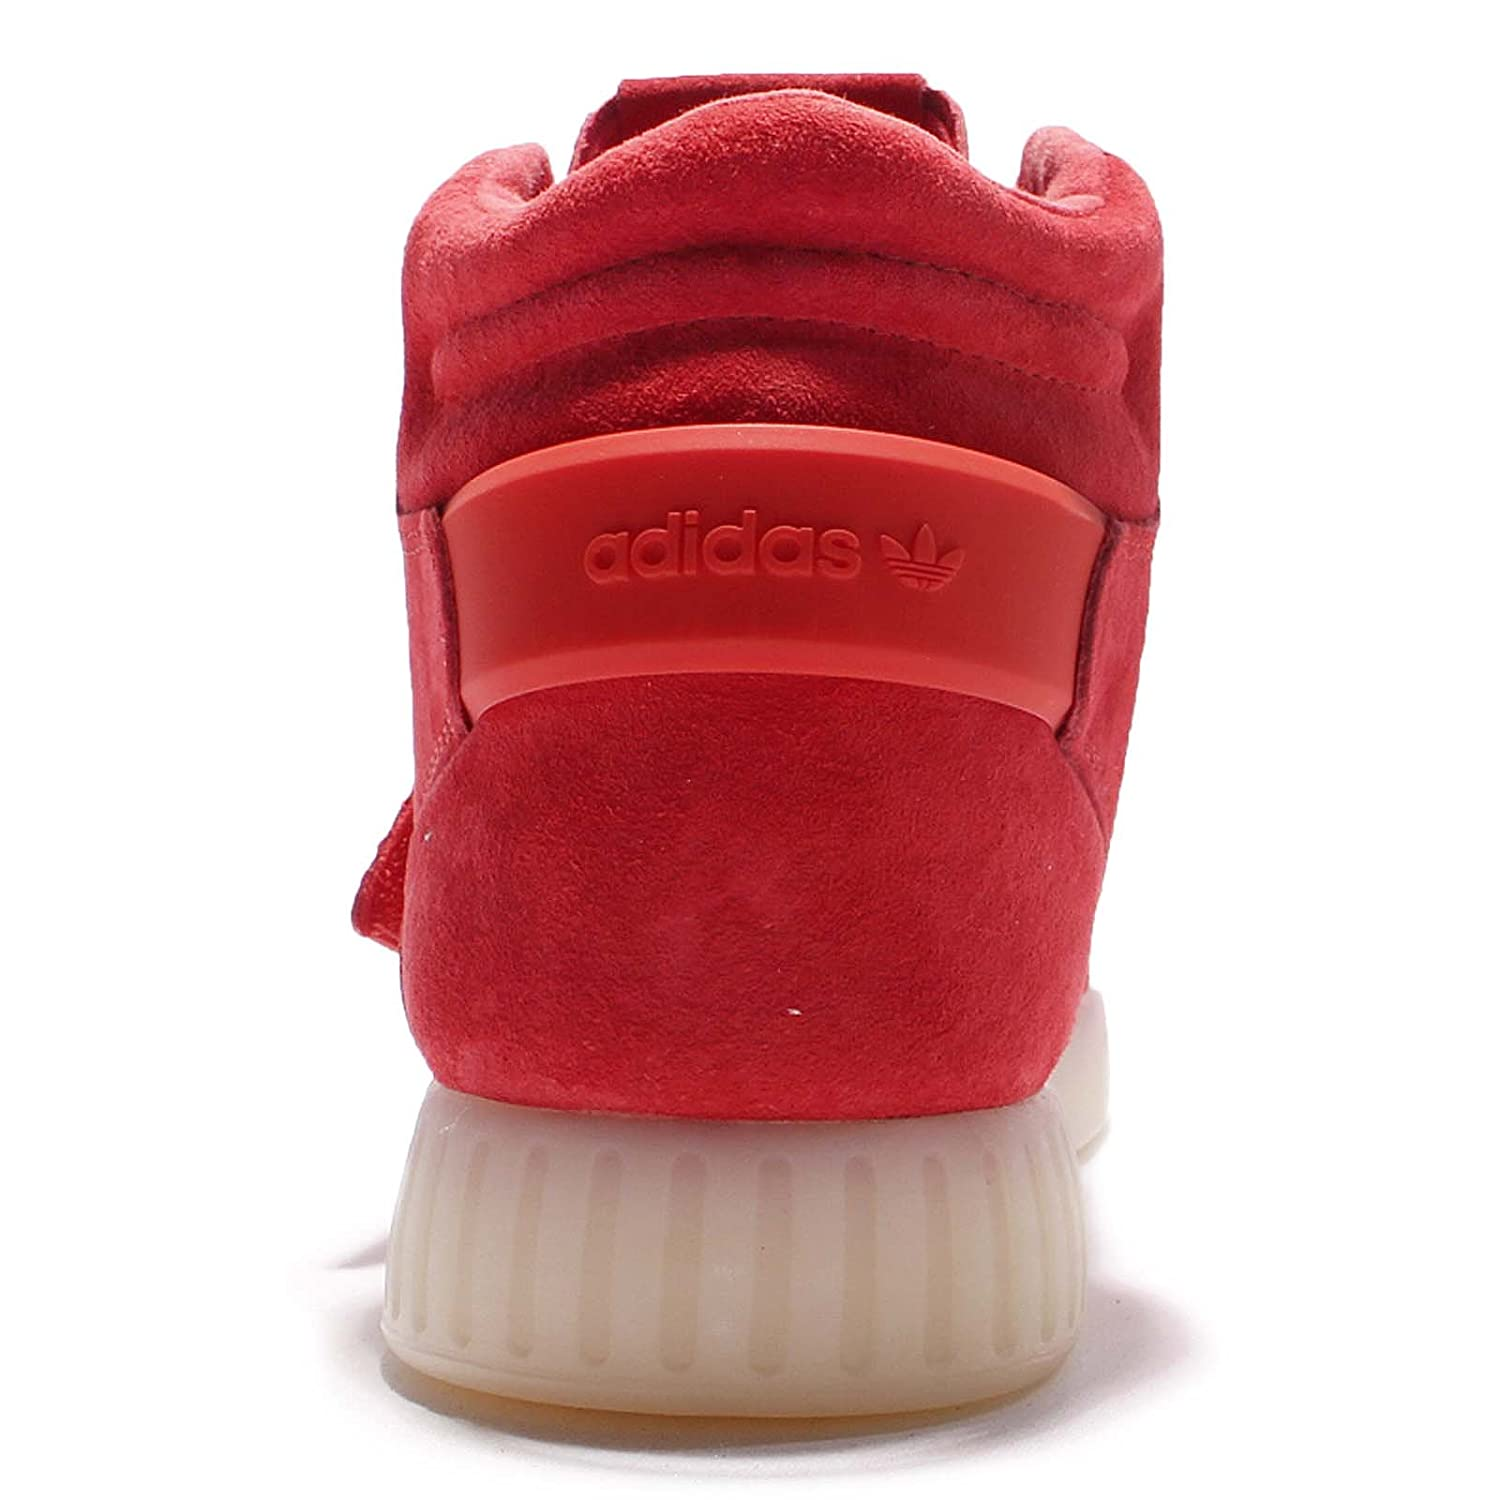 Rouge Invader Tubulaire Adidas ovPzAIHbS